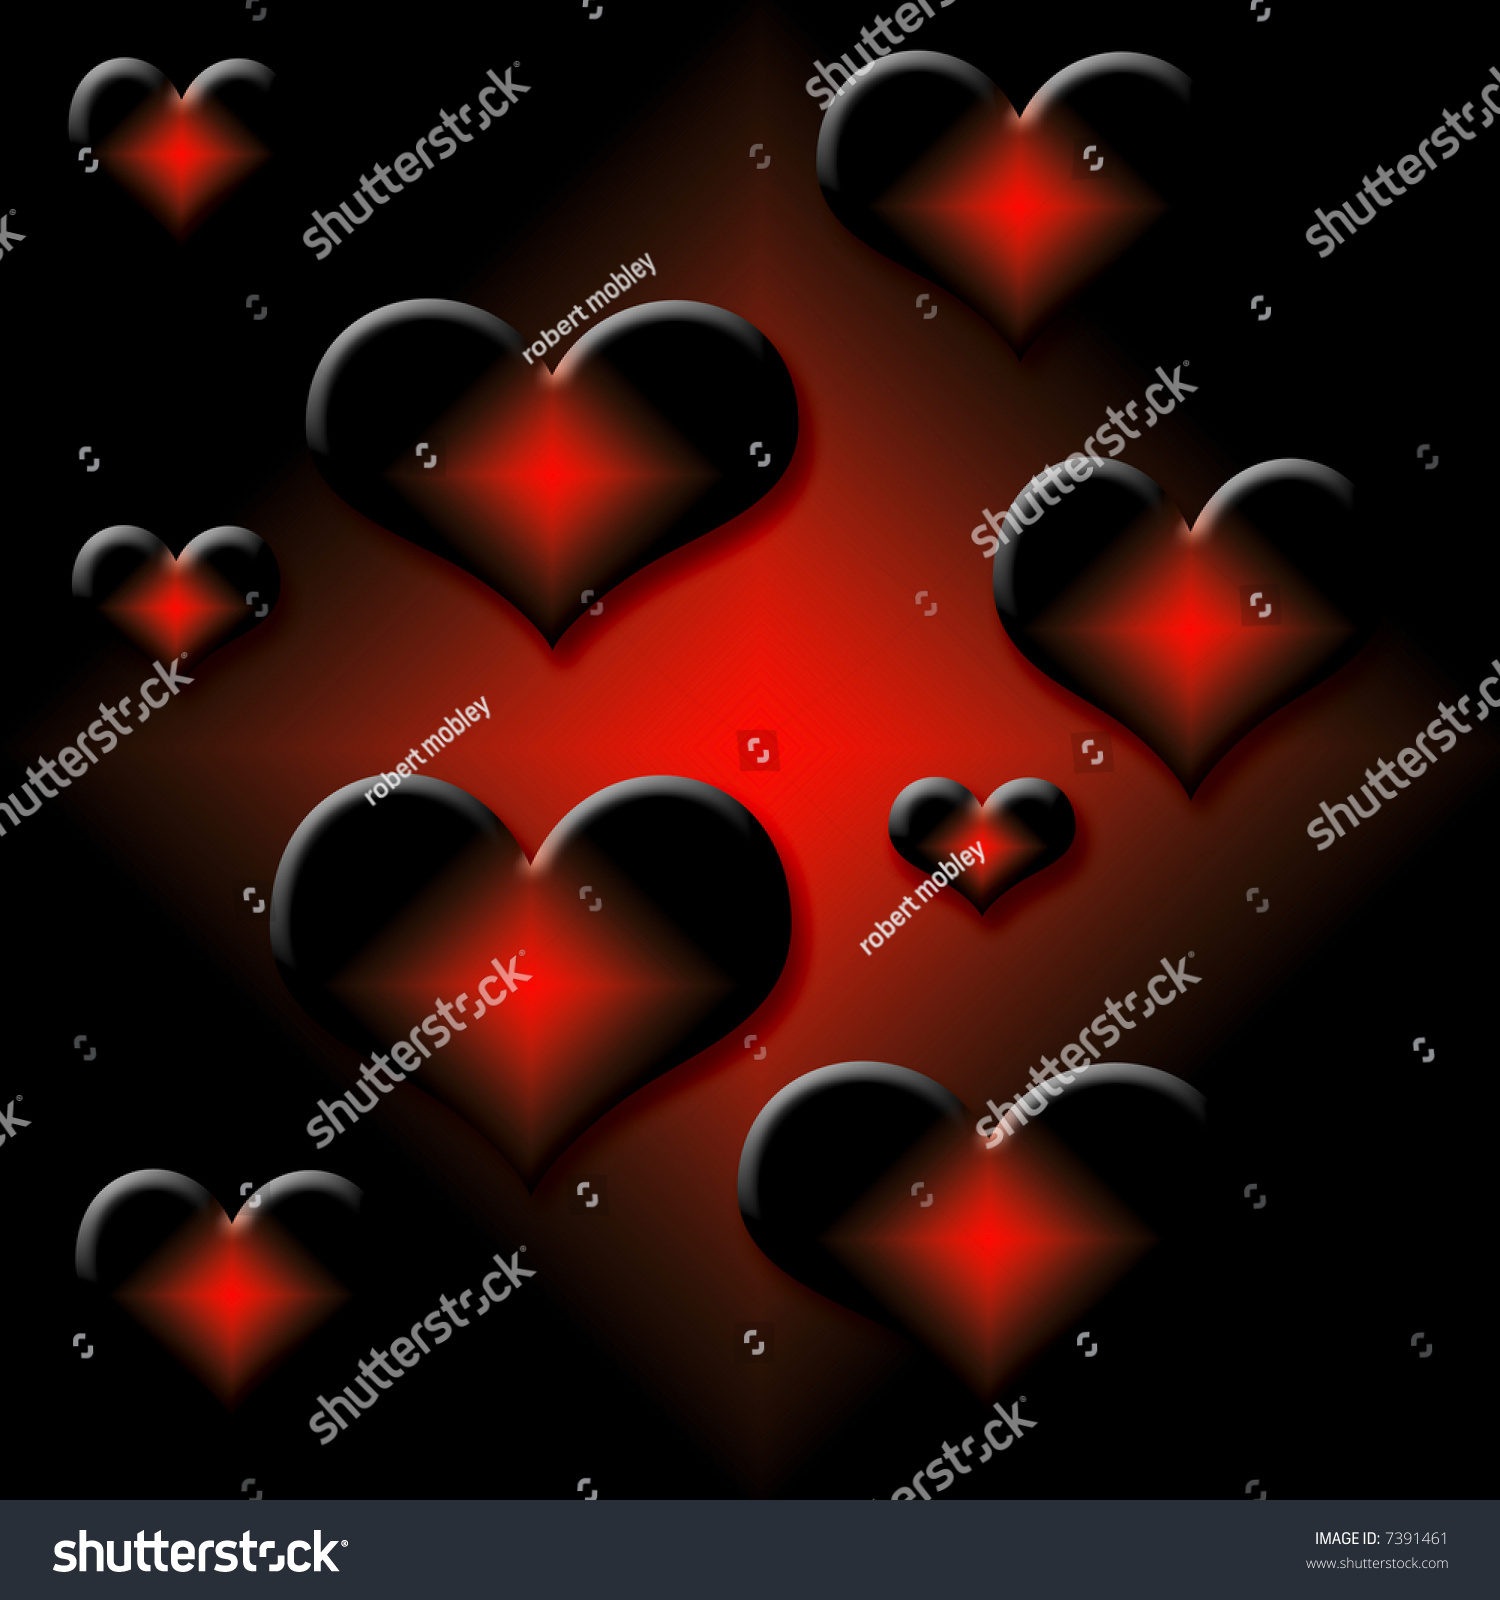 Hot 3d Valentine Hearts On Gradient Background